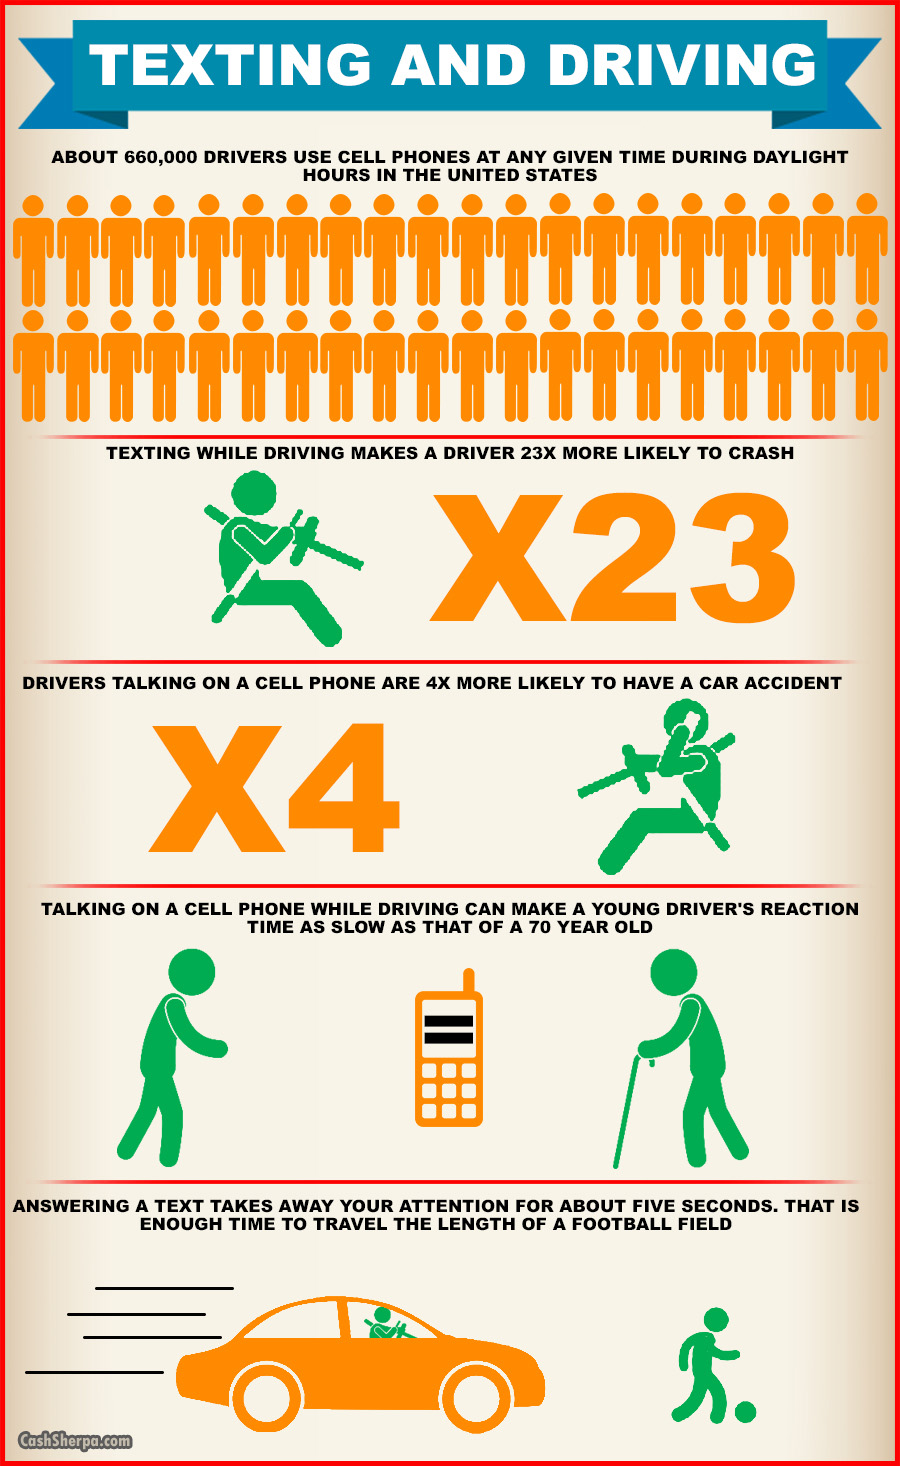 Texting While Driving Infographic